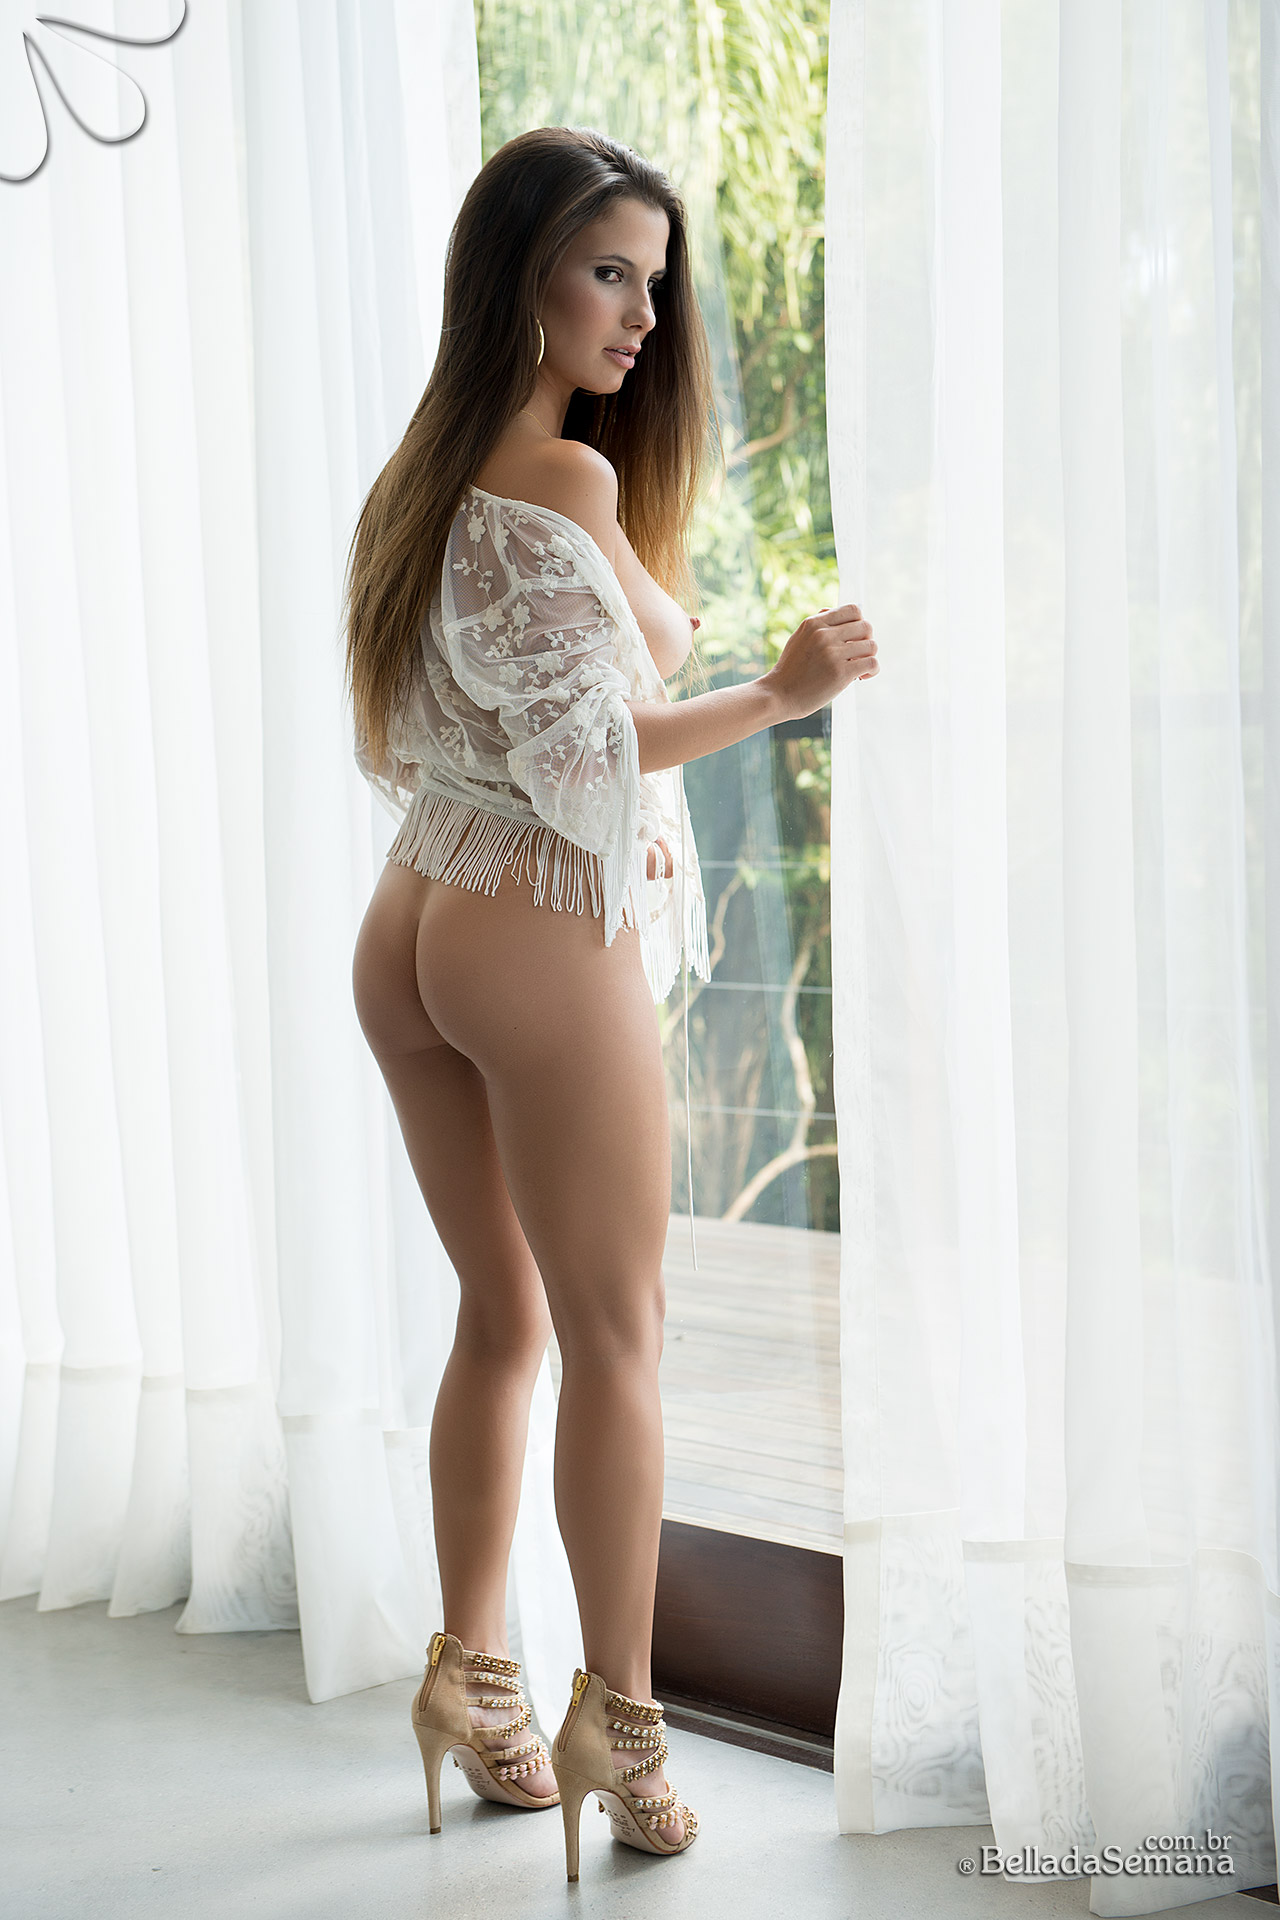 That ass looking good and my hommie agrees 9